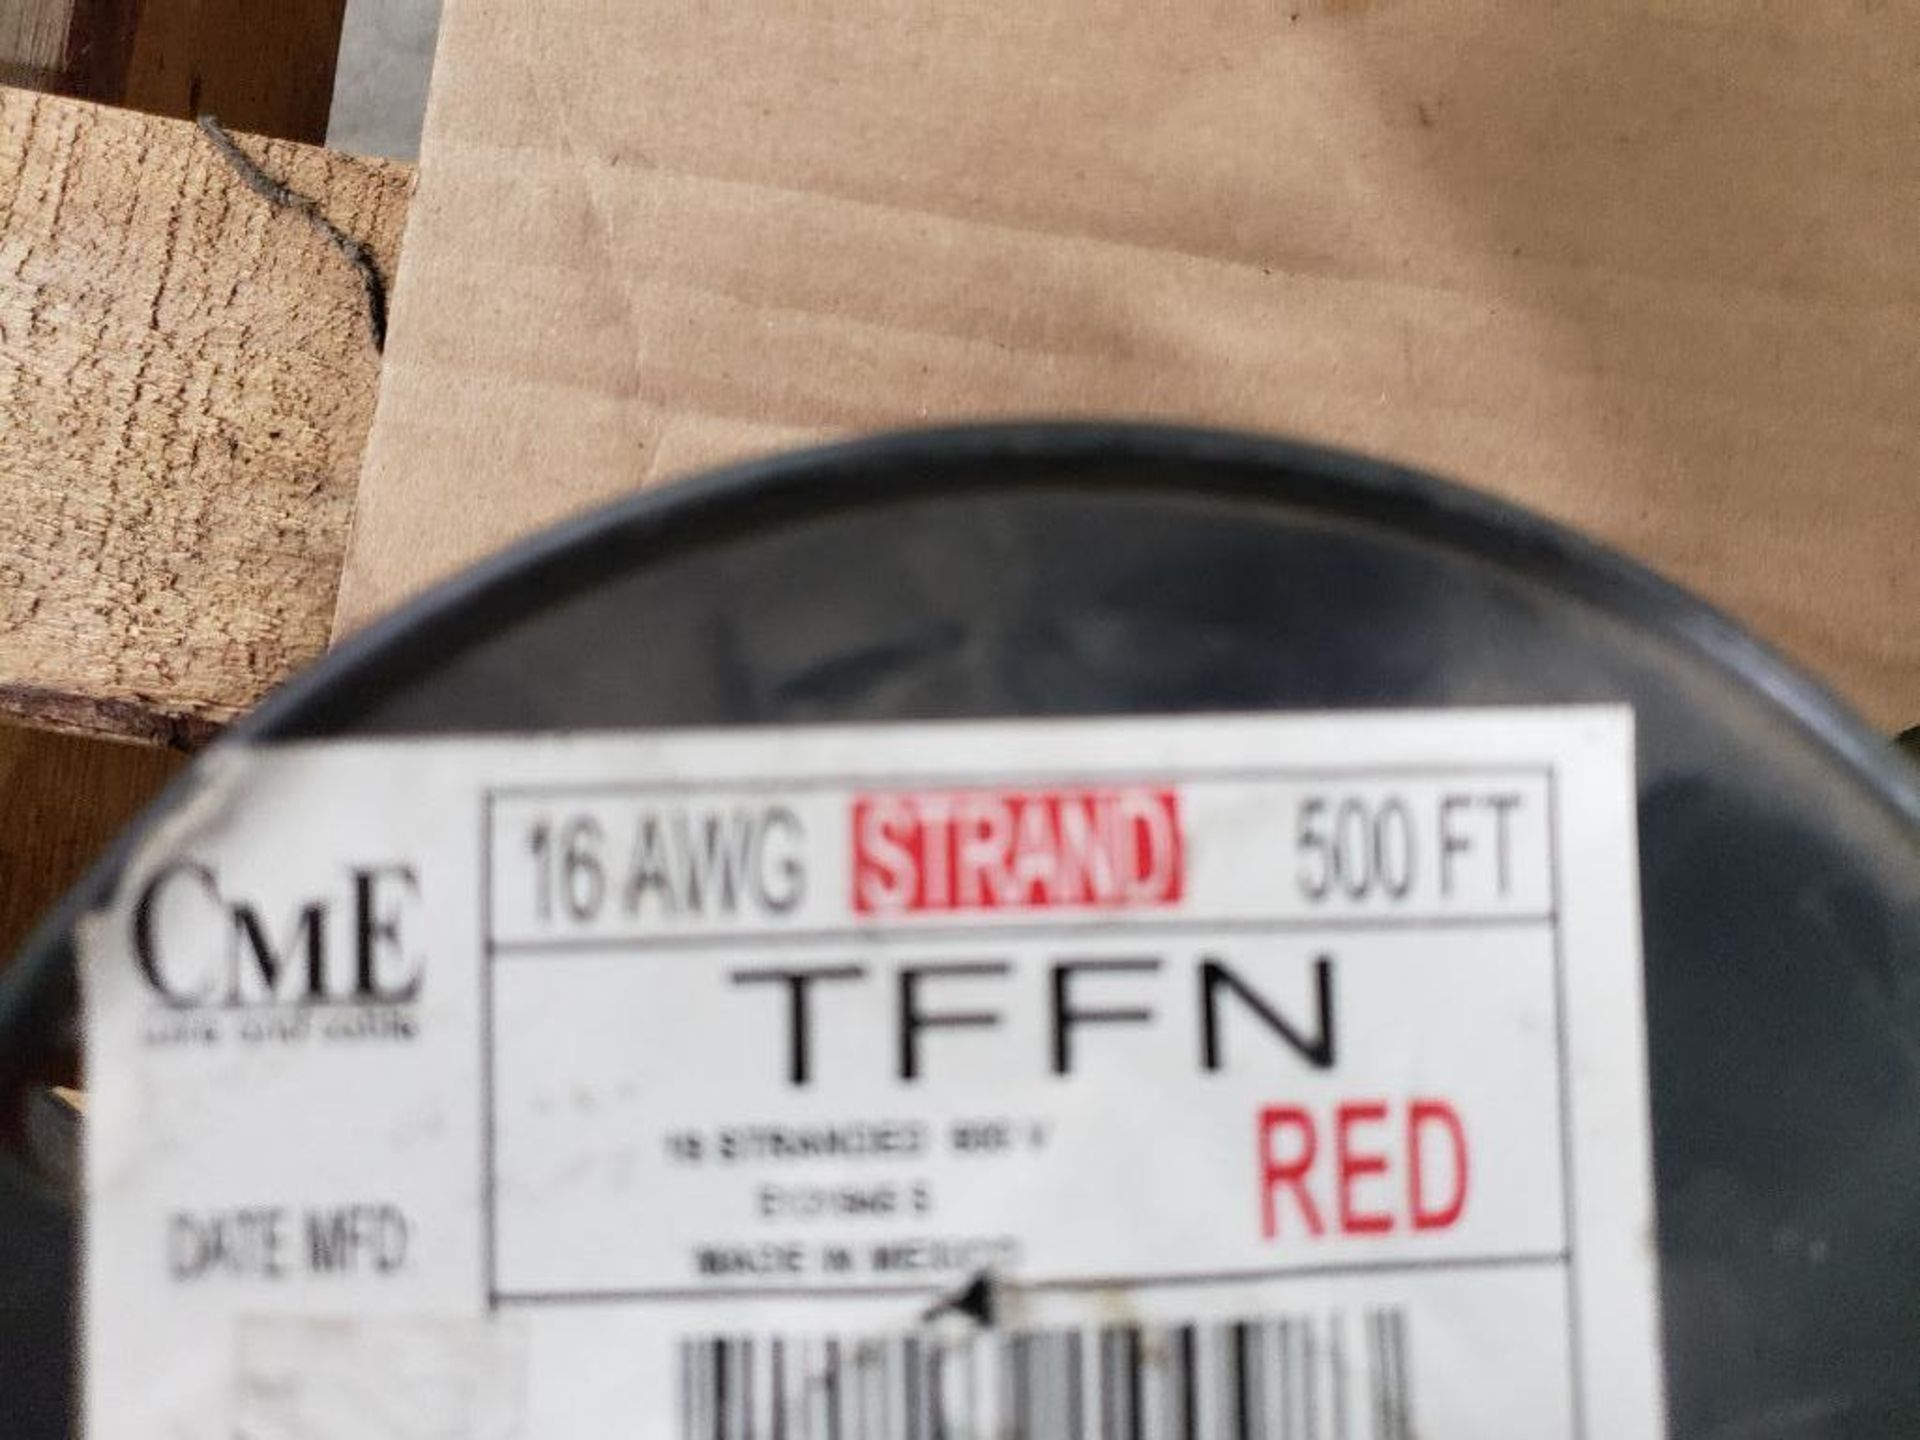 Qty 4 - Spool of CME contractor wire. 16-RED TFFN, 16-WHITE TFFN. - Image 3 of 5